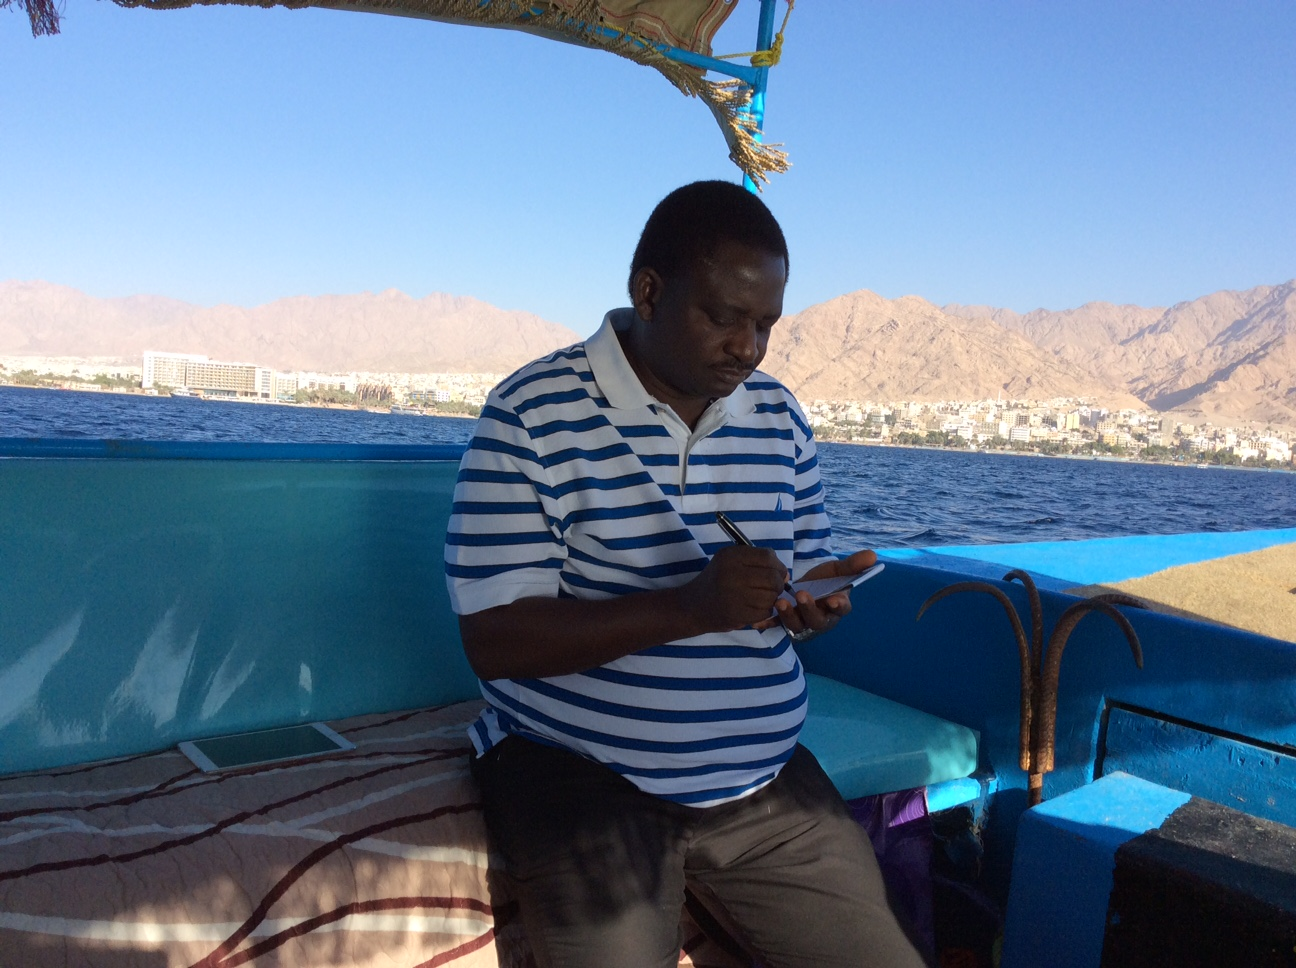 A frolic on the Red Sea  By Femi Adesina